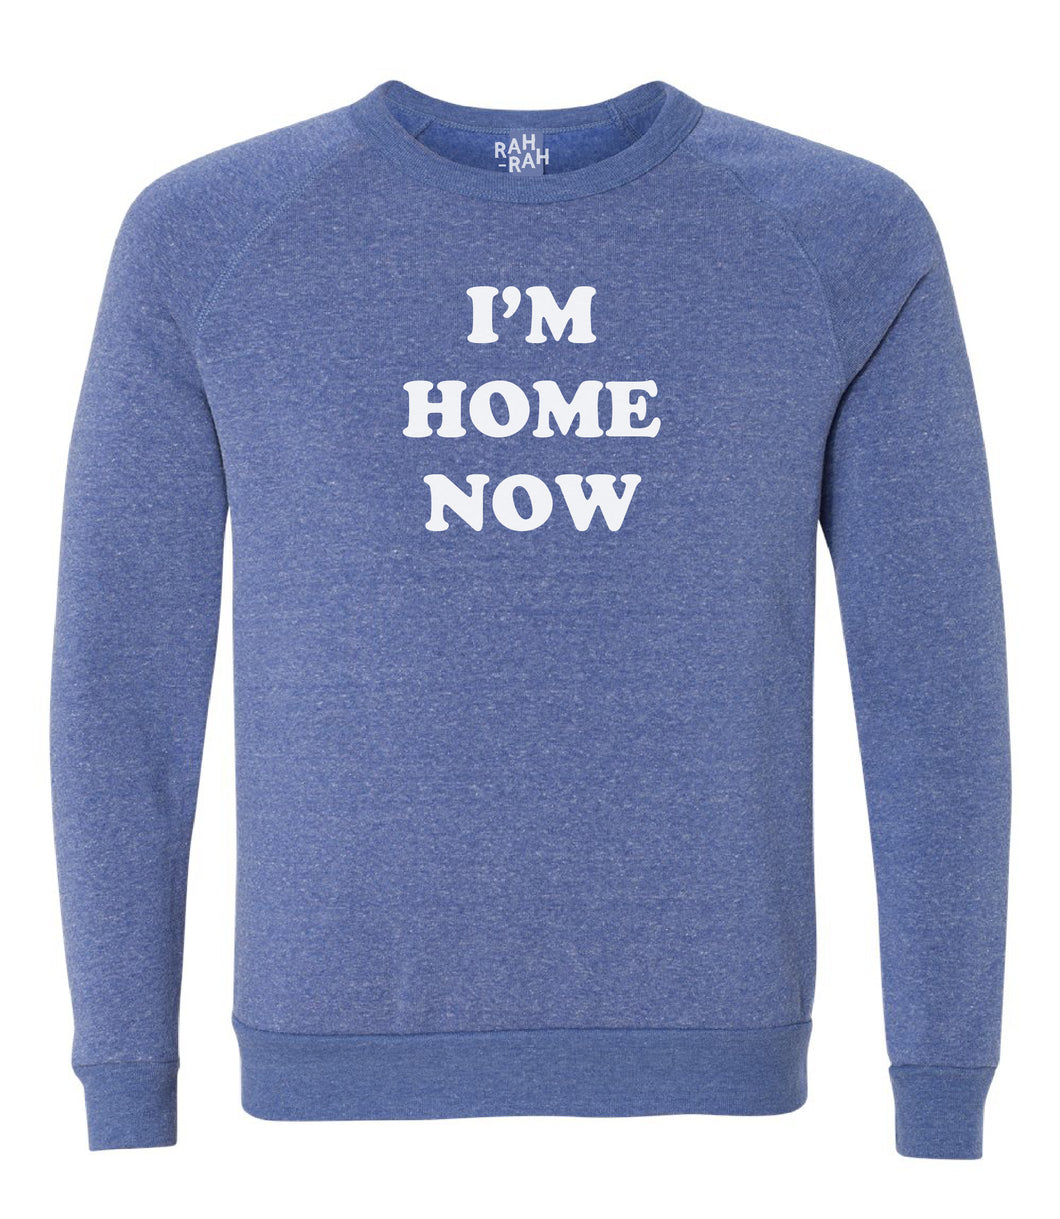 I'm Home Now Sweatshirt | Light Blue